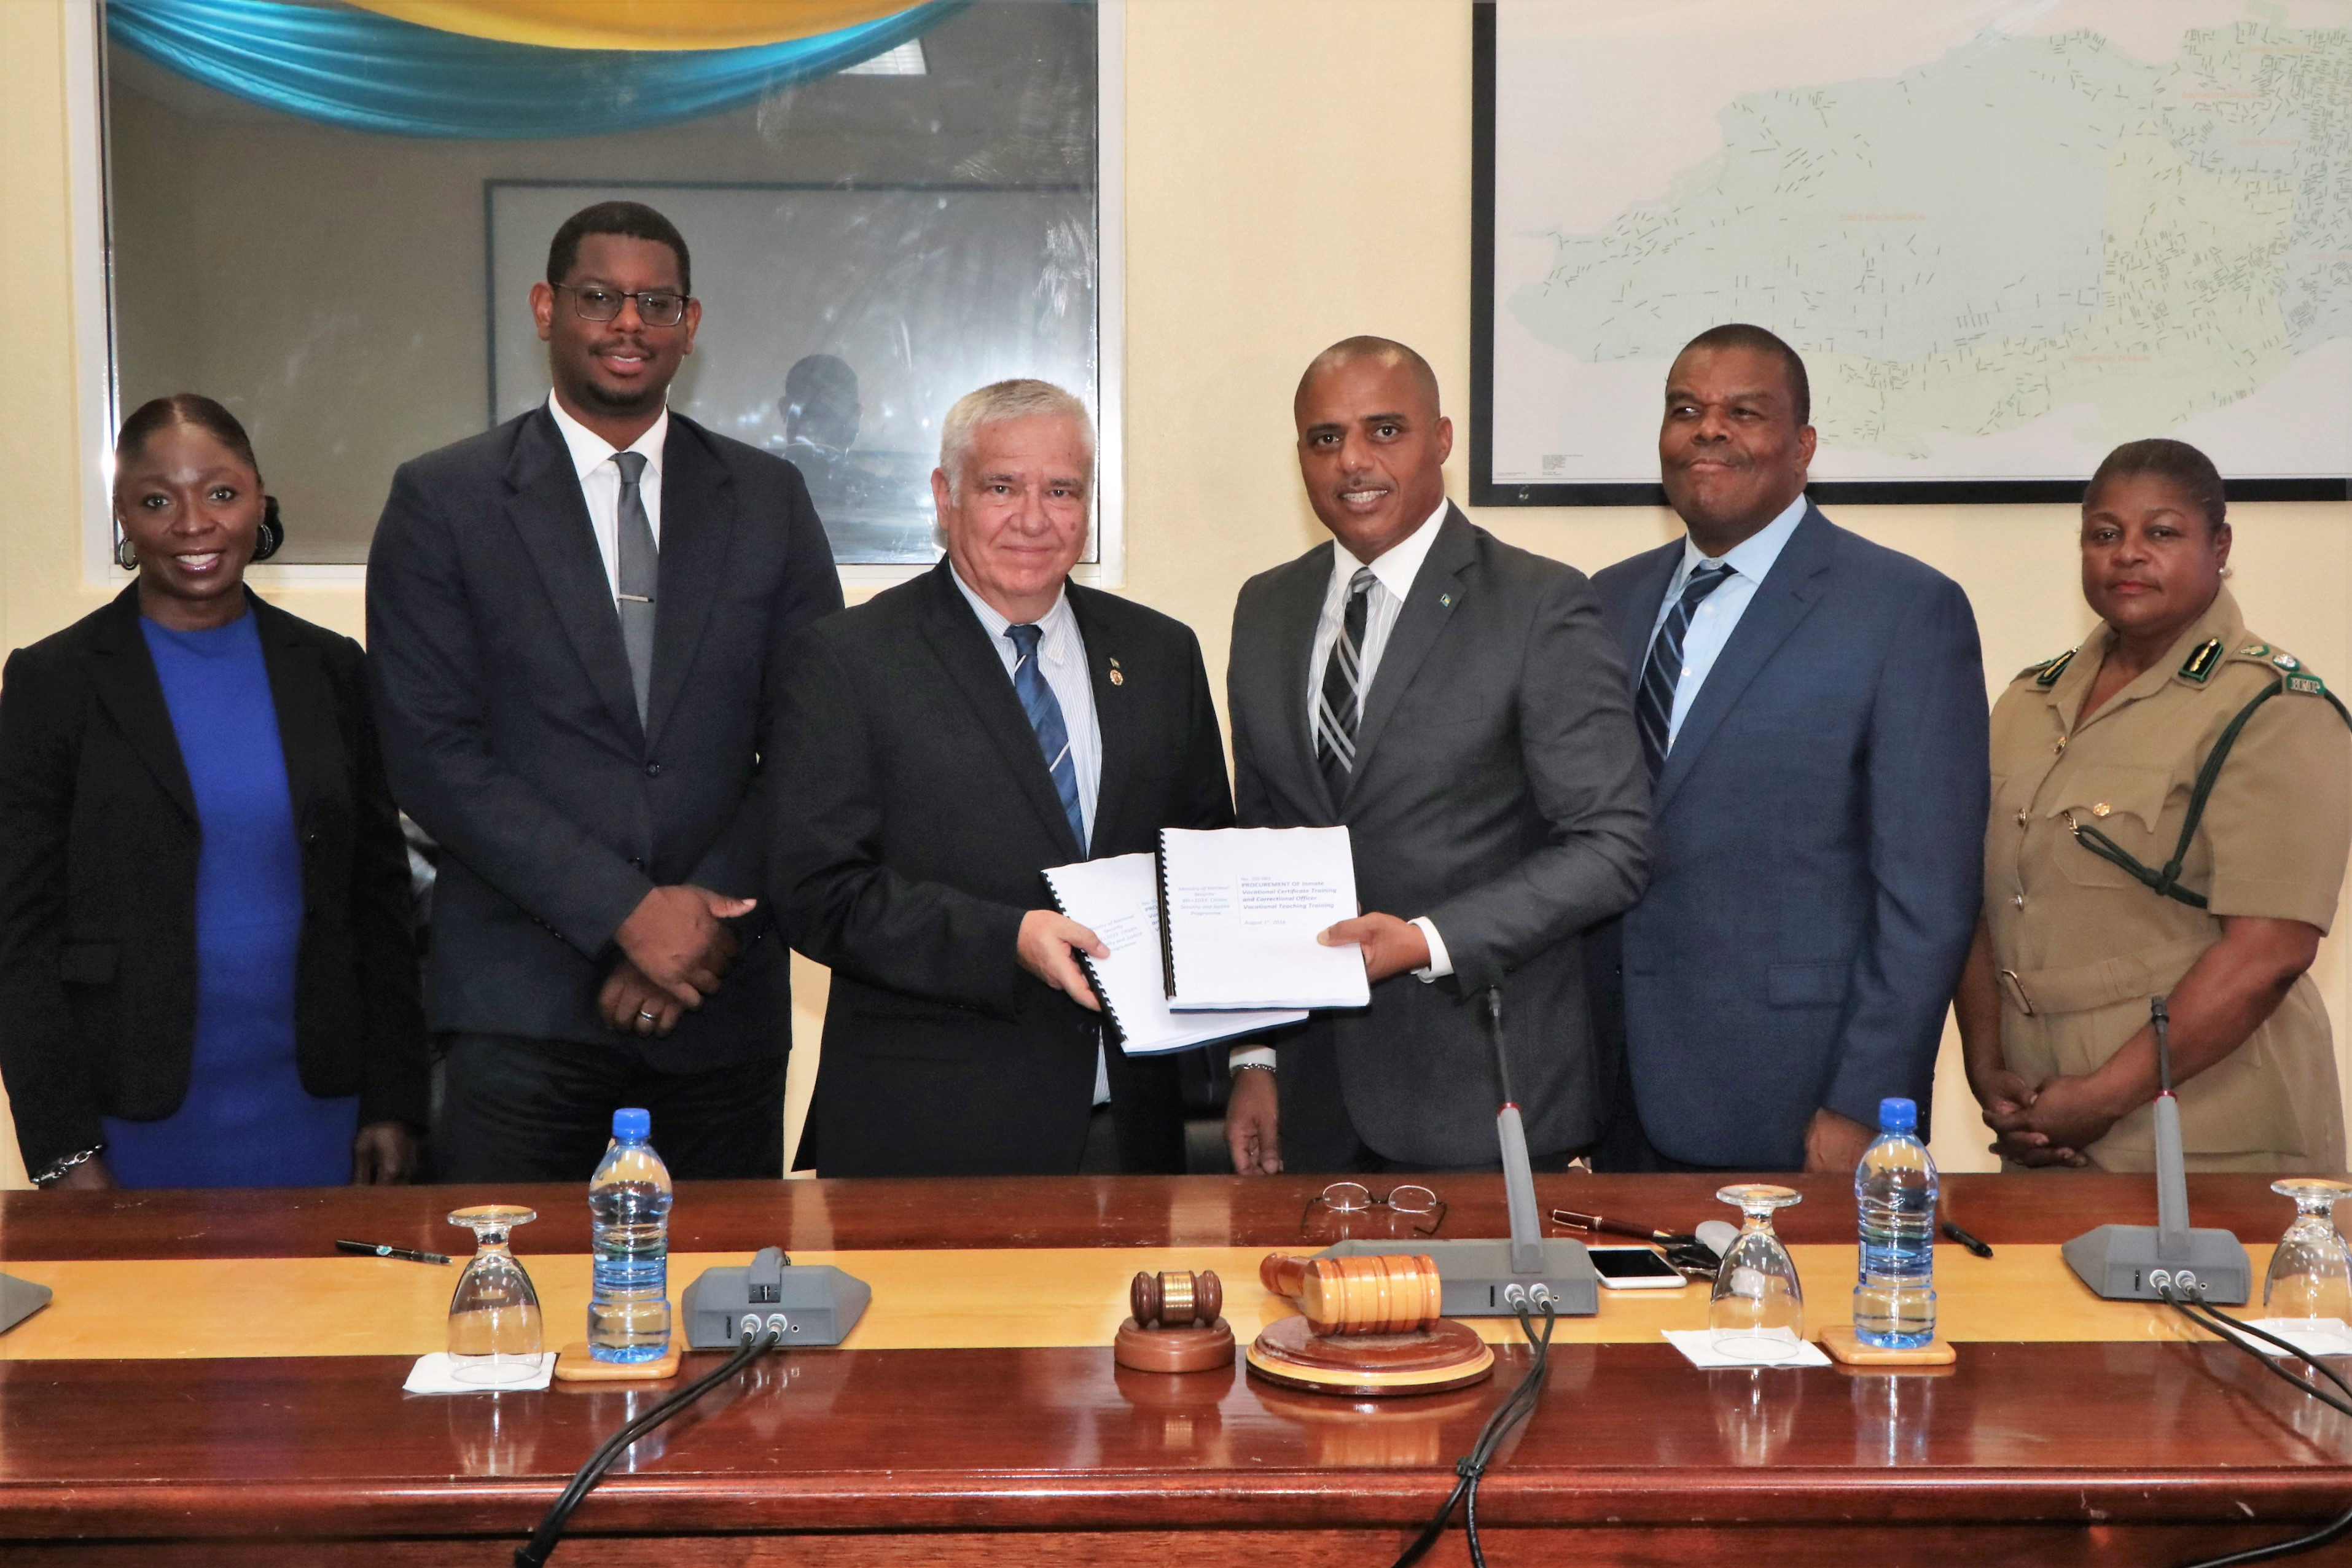 Govt. signs contract to train 600 inmates, 7 corrections officers